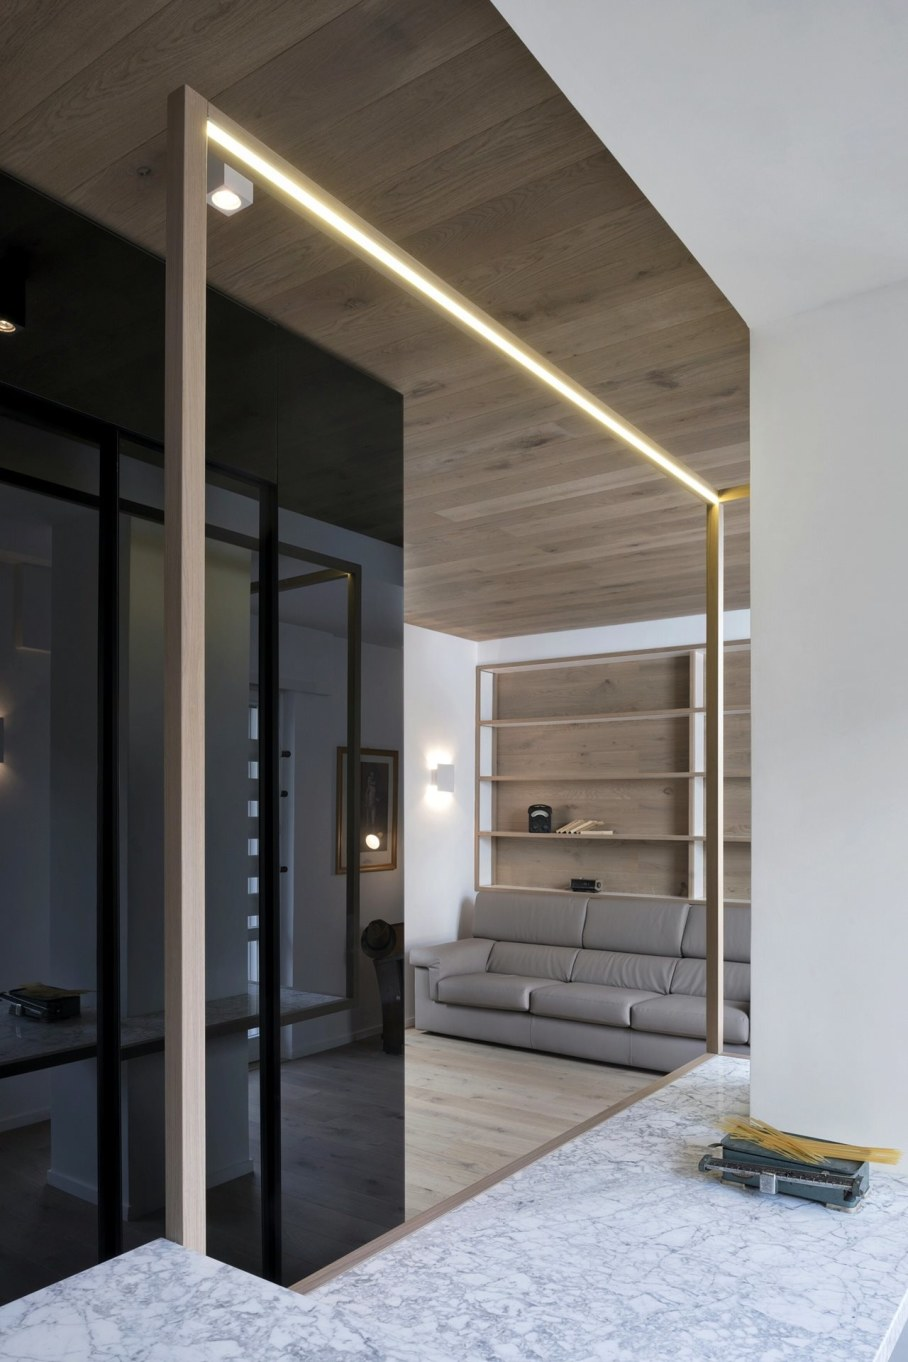 Cube House by Noses Architects studio 6